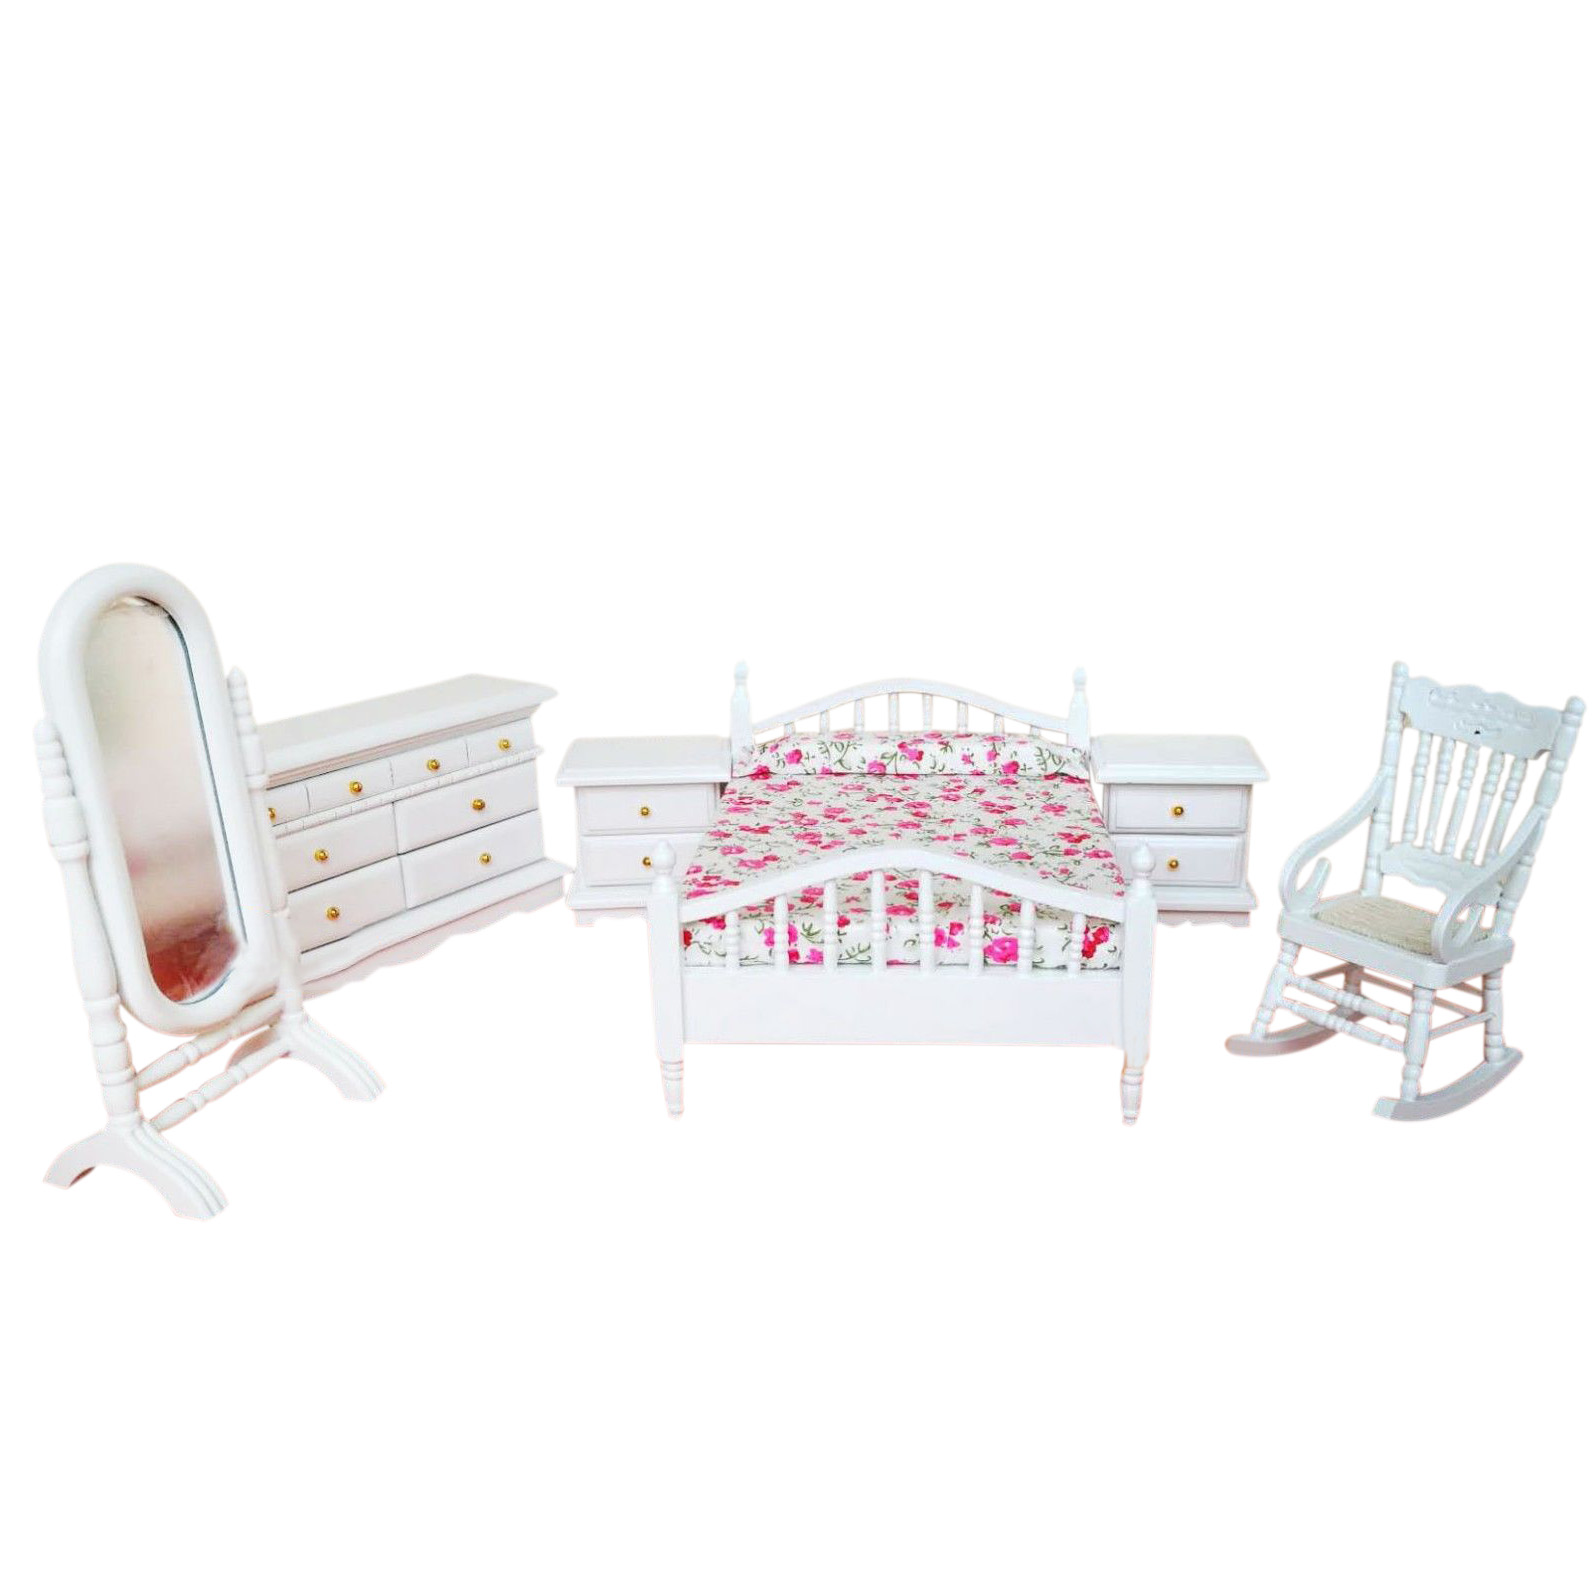 6 PCS/set Dollhouse Bedroom Furniture Bed Rocking Chair Dressing Mirror Cabinet